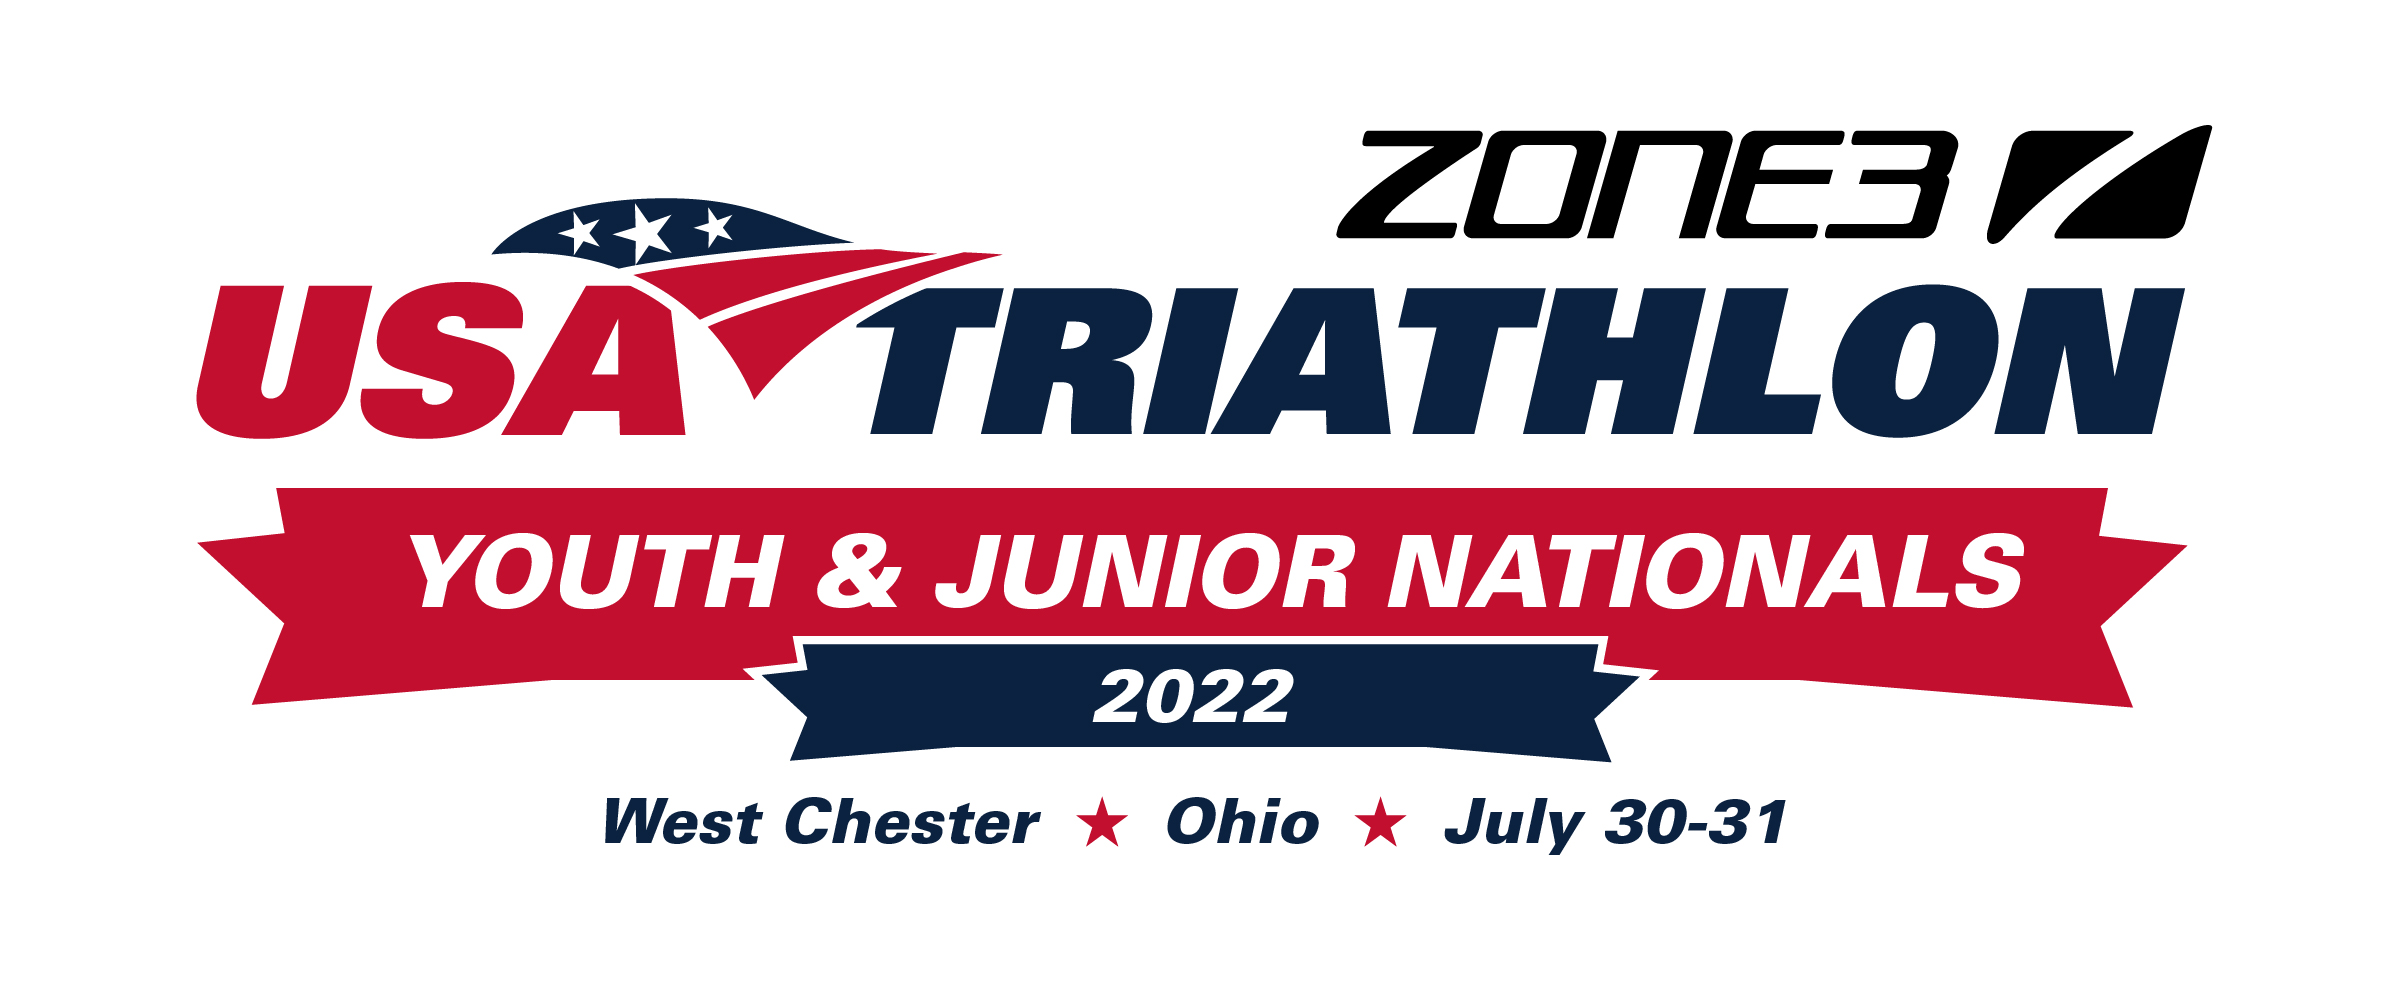 2022 Zone3 Youth and Junior Nationals- Youth Age Groups 7-18